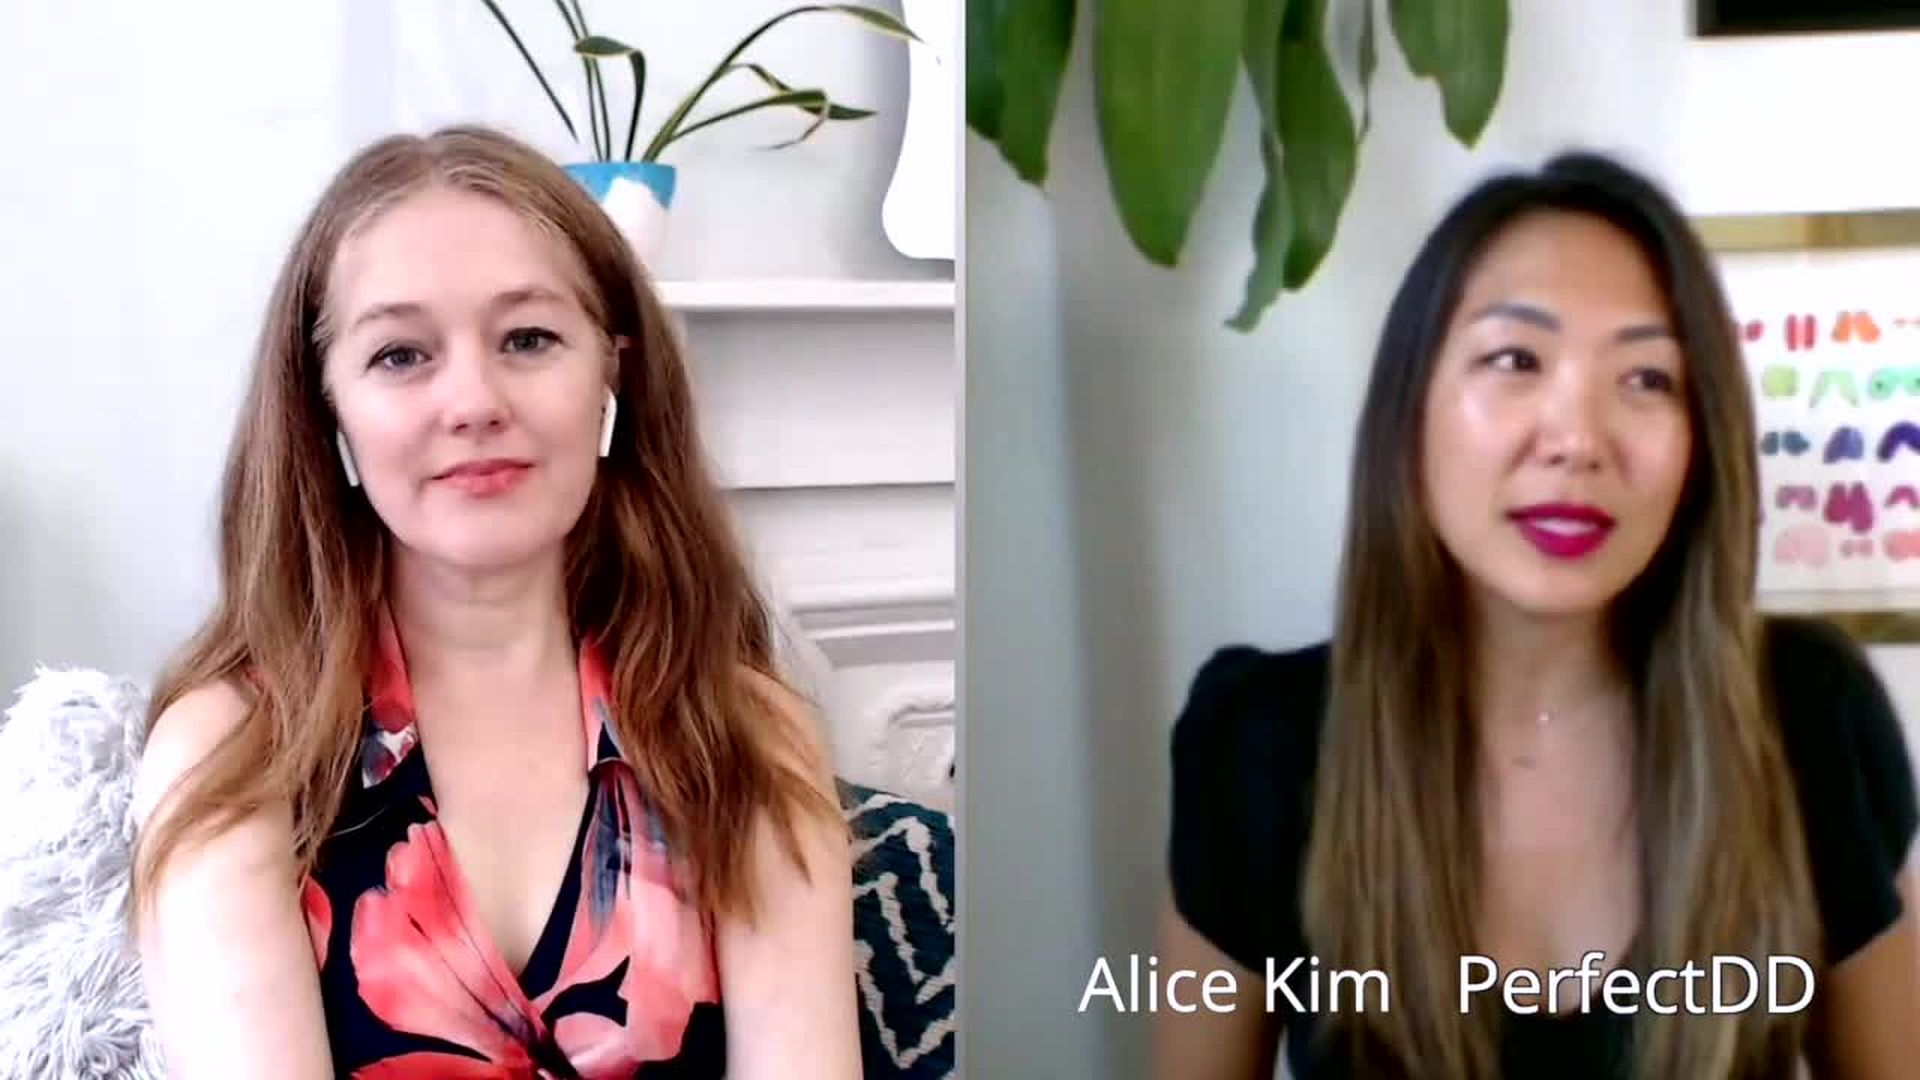 Are Big Breasts Over-Sexualized With Alice Kim